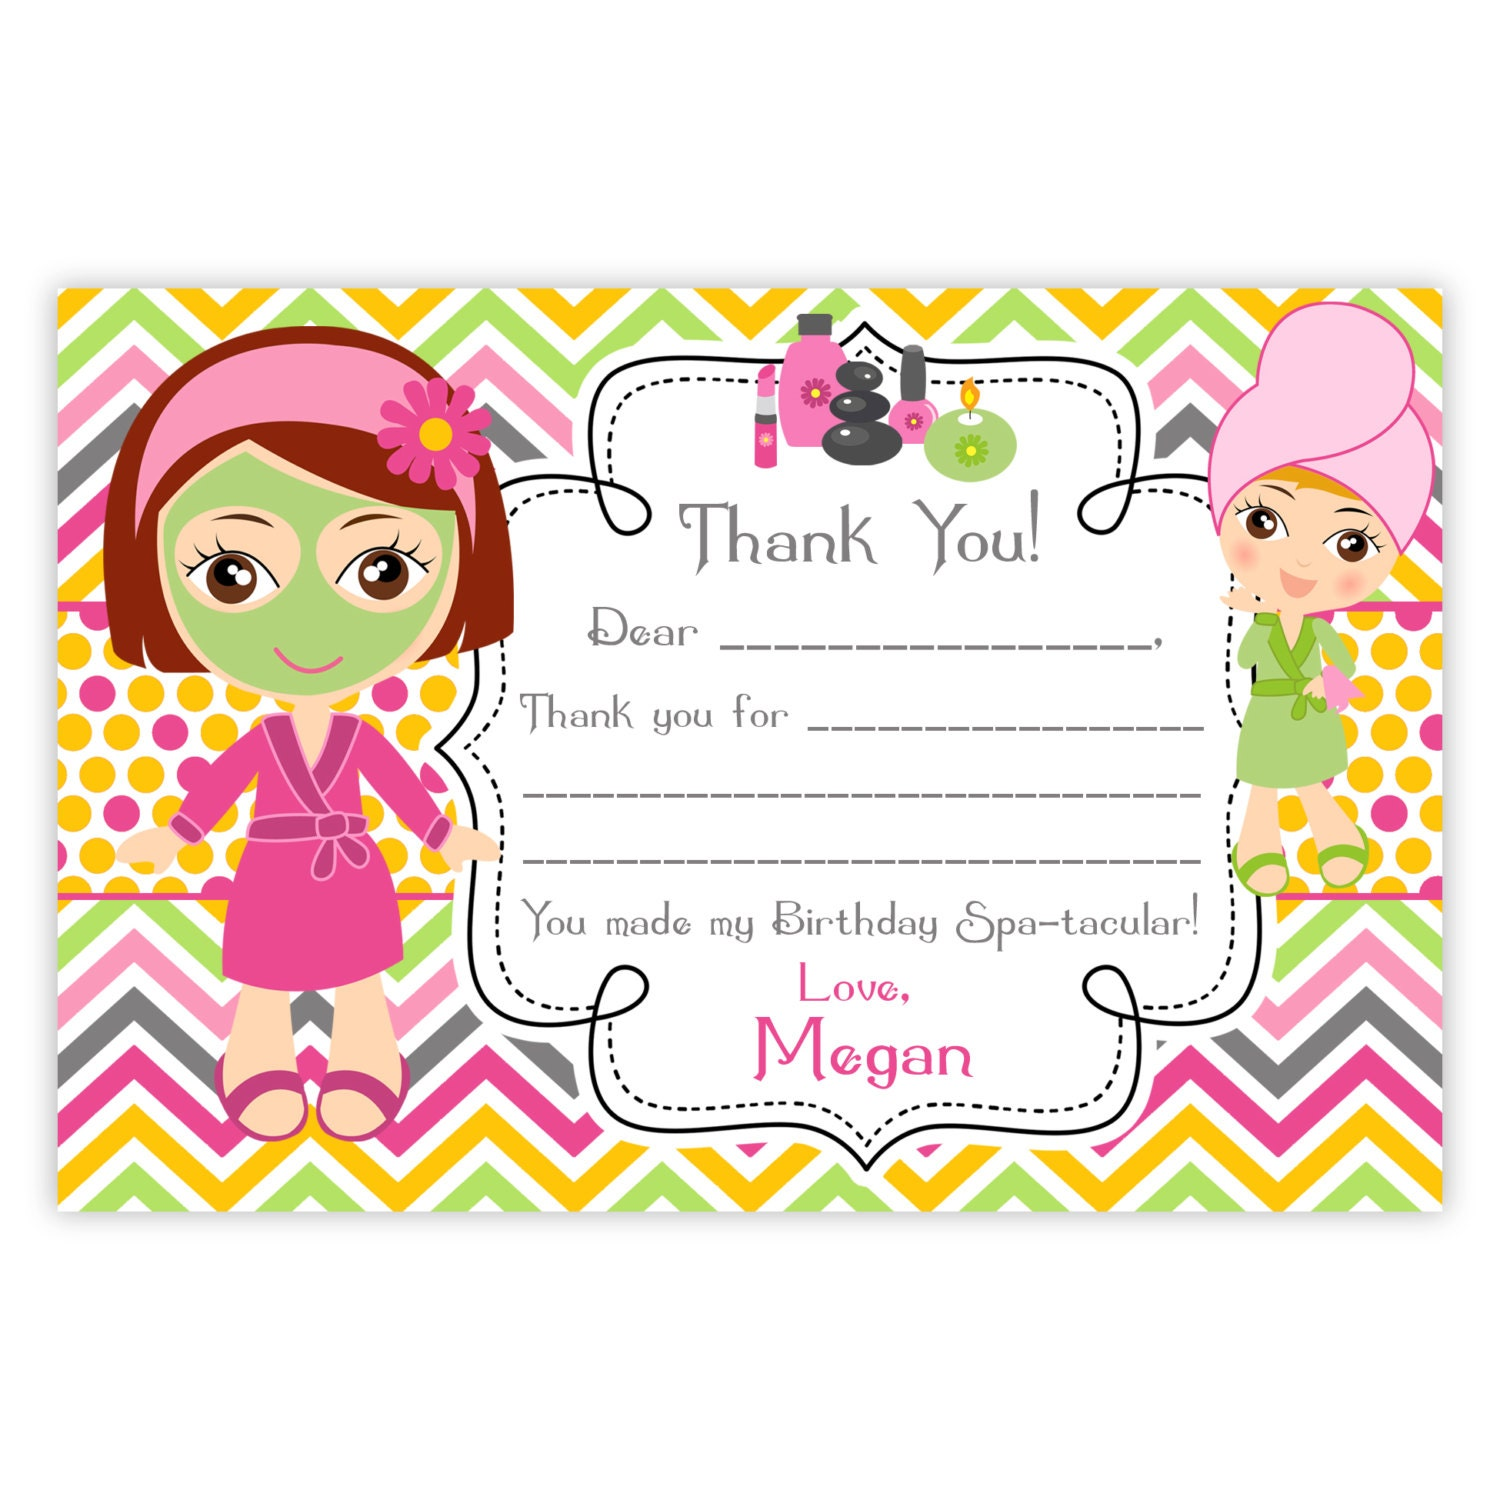 Spa party thank you card pink orange chevron cute little zoom kristyandbryce Images